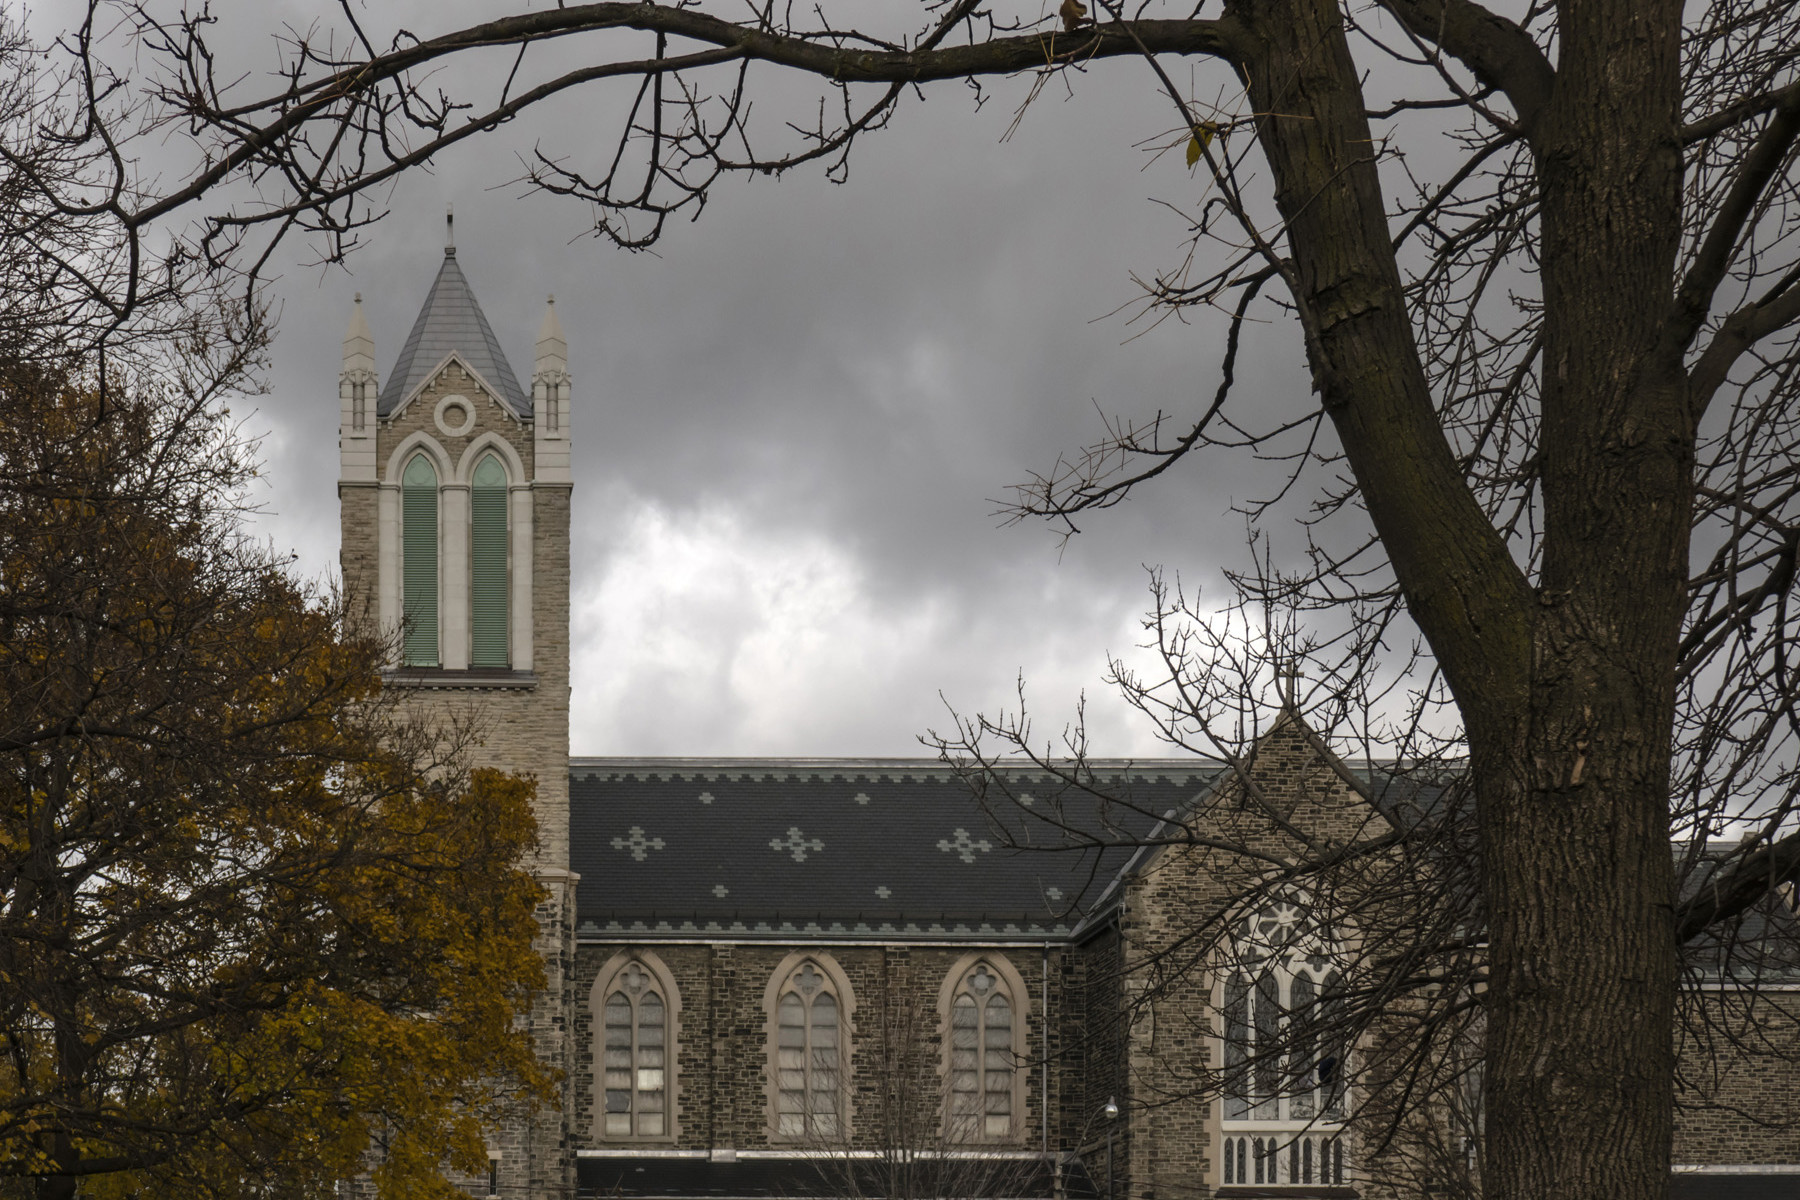 Elevation of church highlighting slate roof and bell tower set behind trees with stormy sky